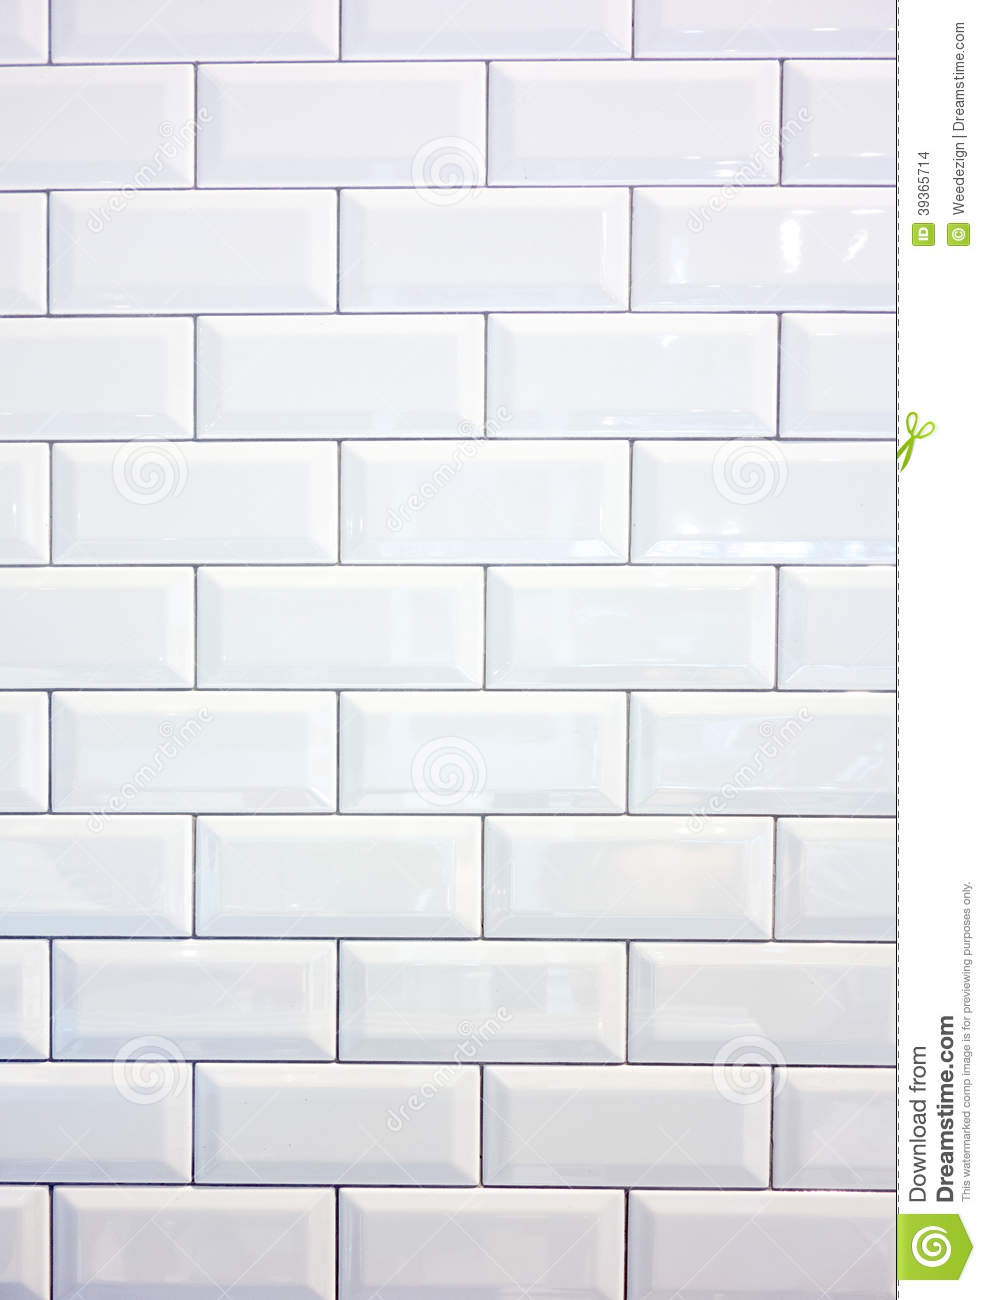 White ceramic tile wall stock photo. Image of clean, tile - 39365714